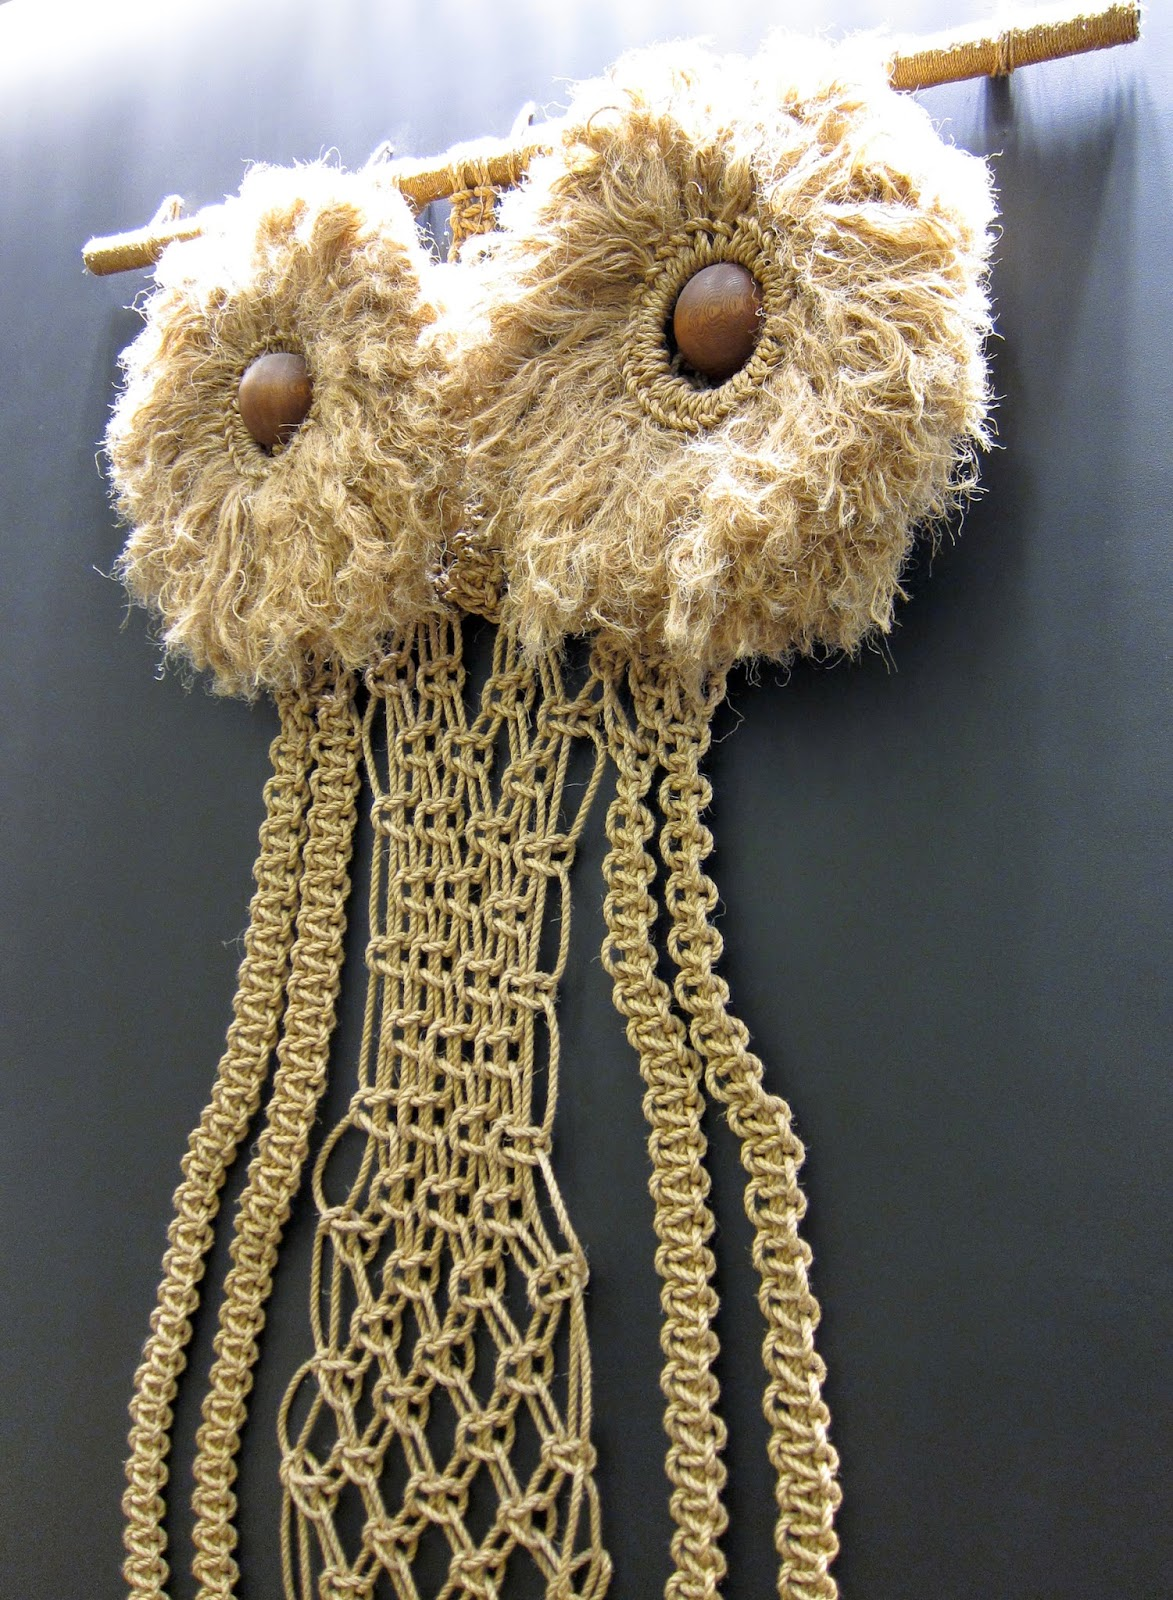 Macrame Owl at J. Crew in SOHO by Scott Beale / Laughing Squid